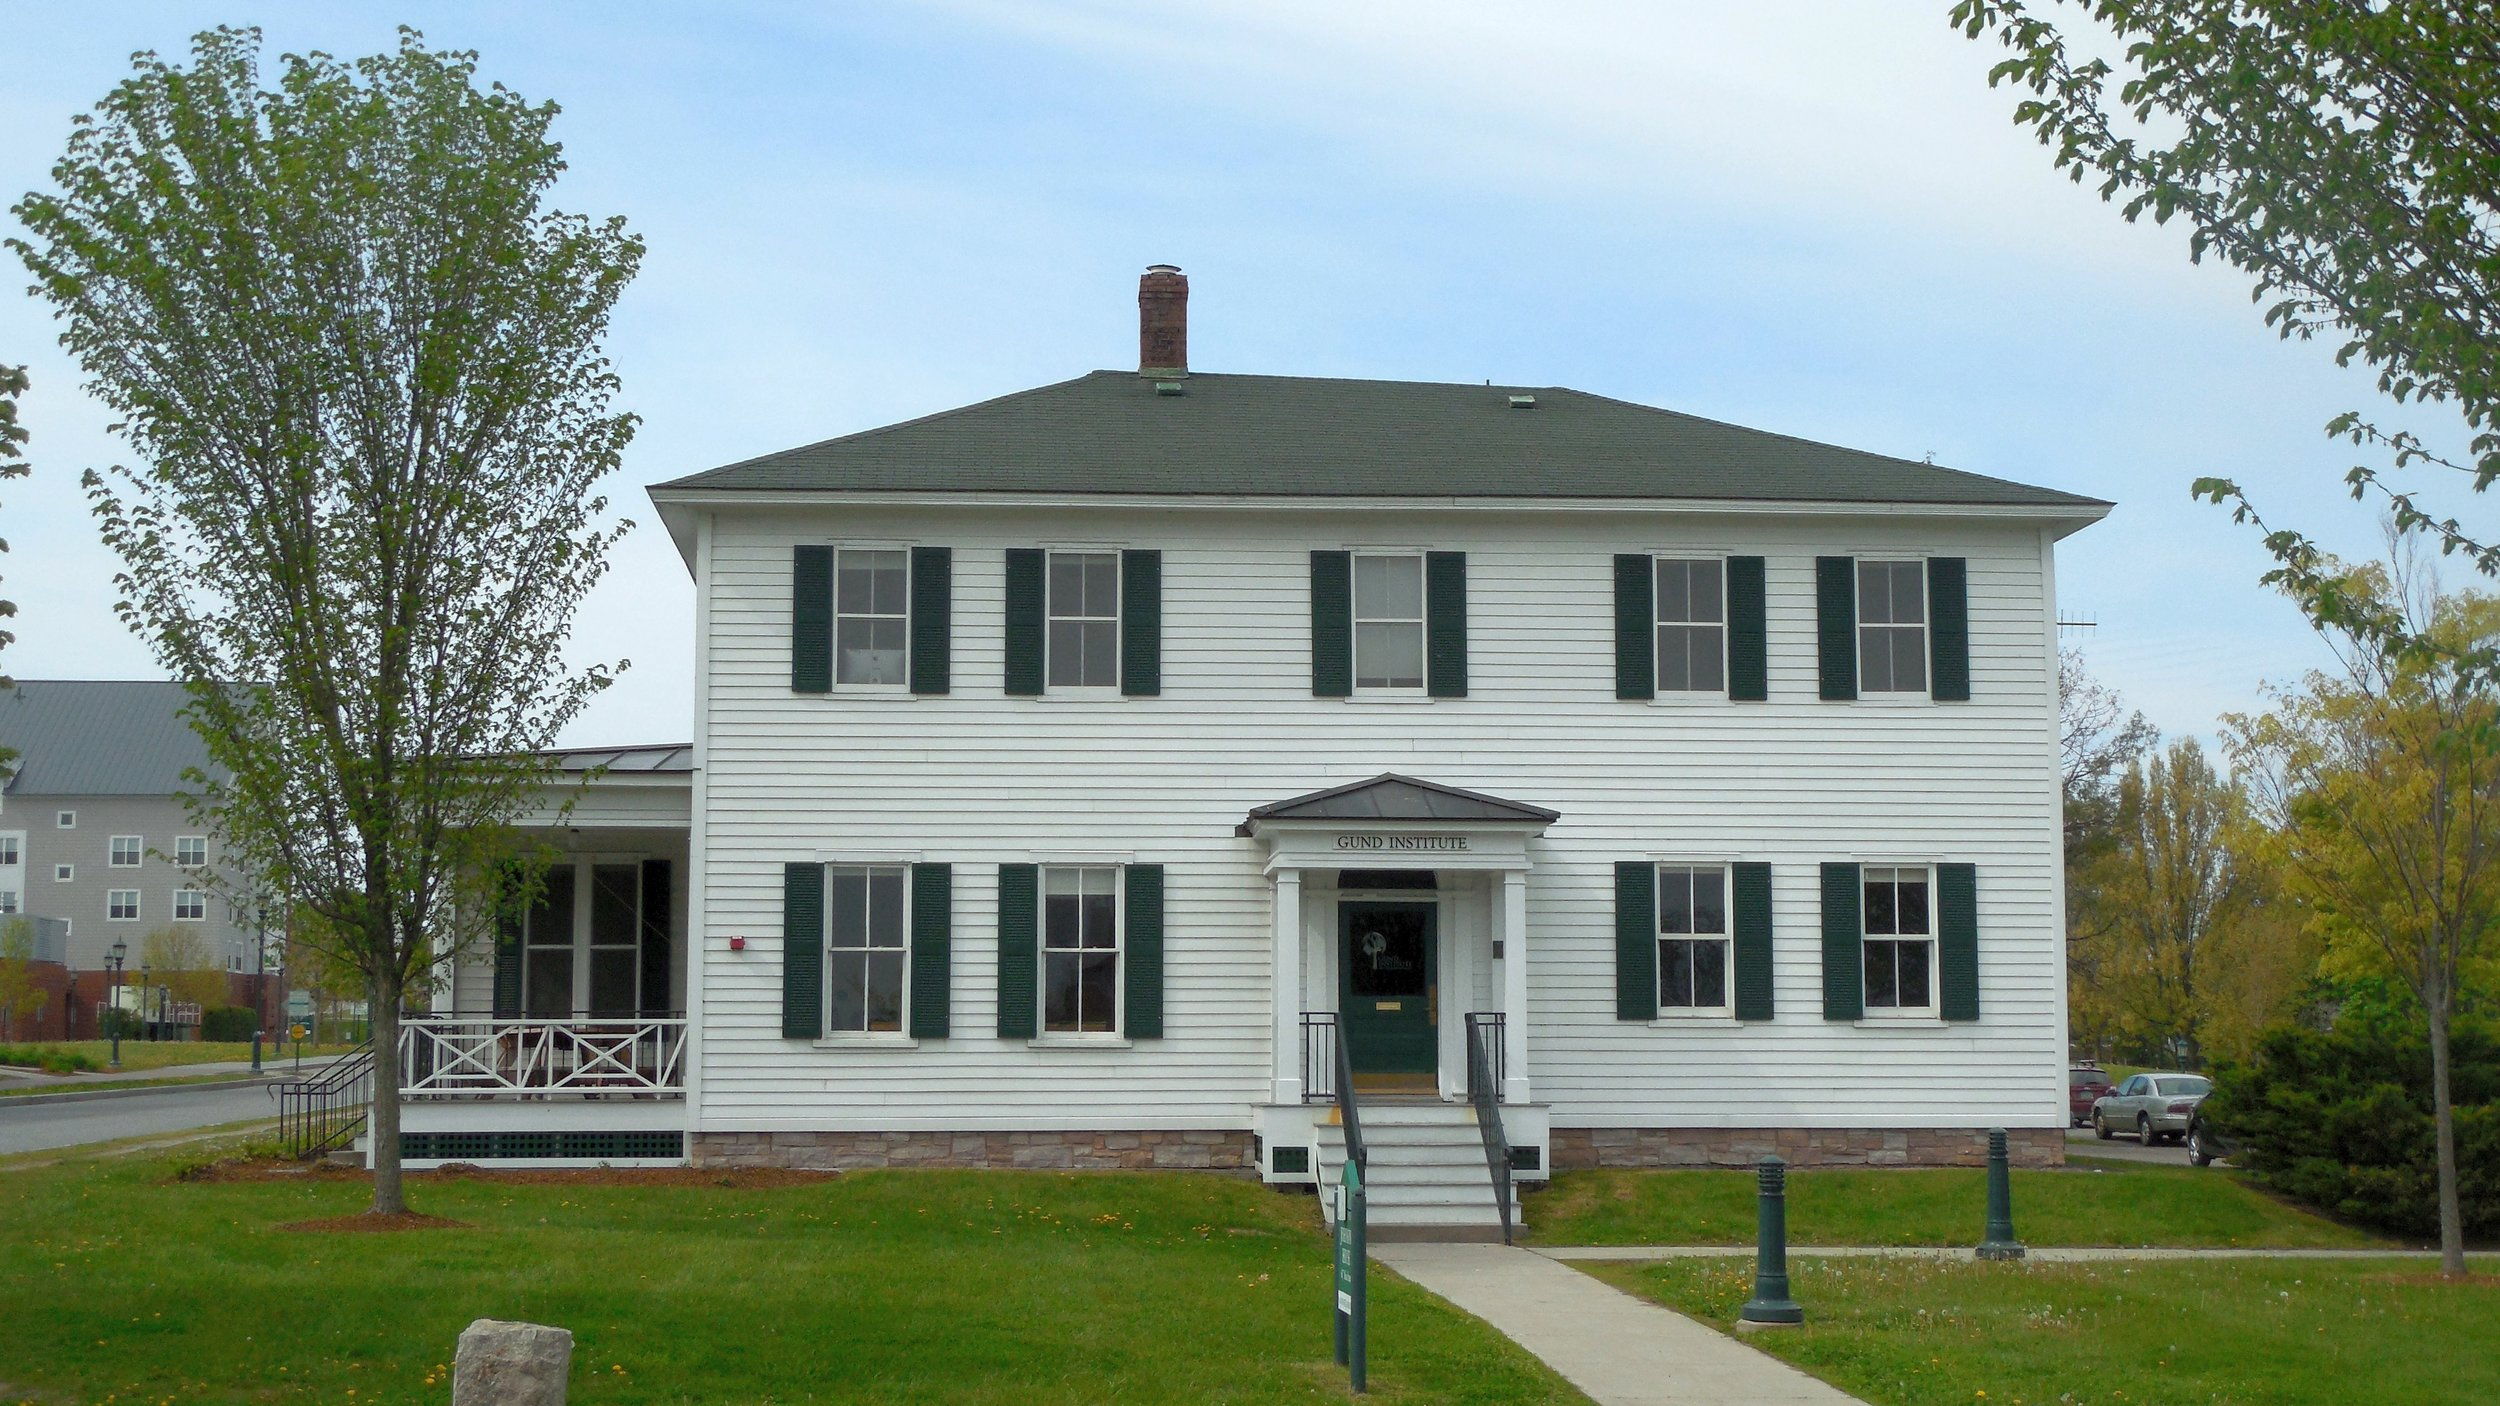 Johnson House at UVM, Home of the Gund Institute for Ecological Economics